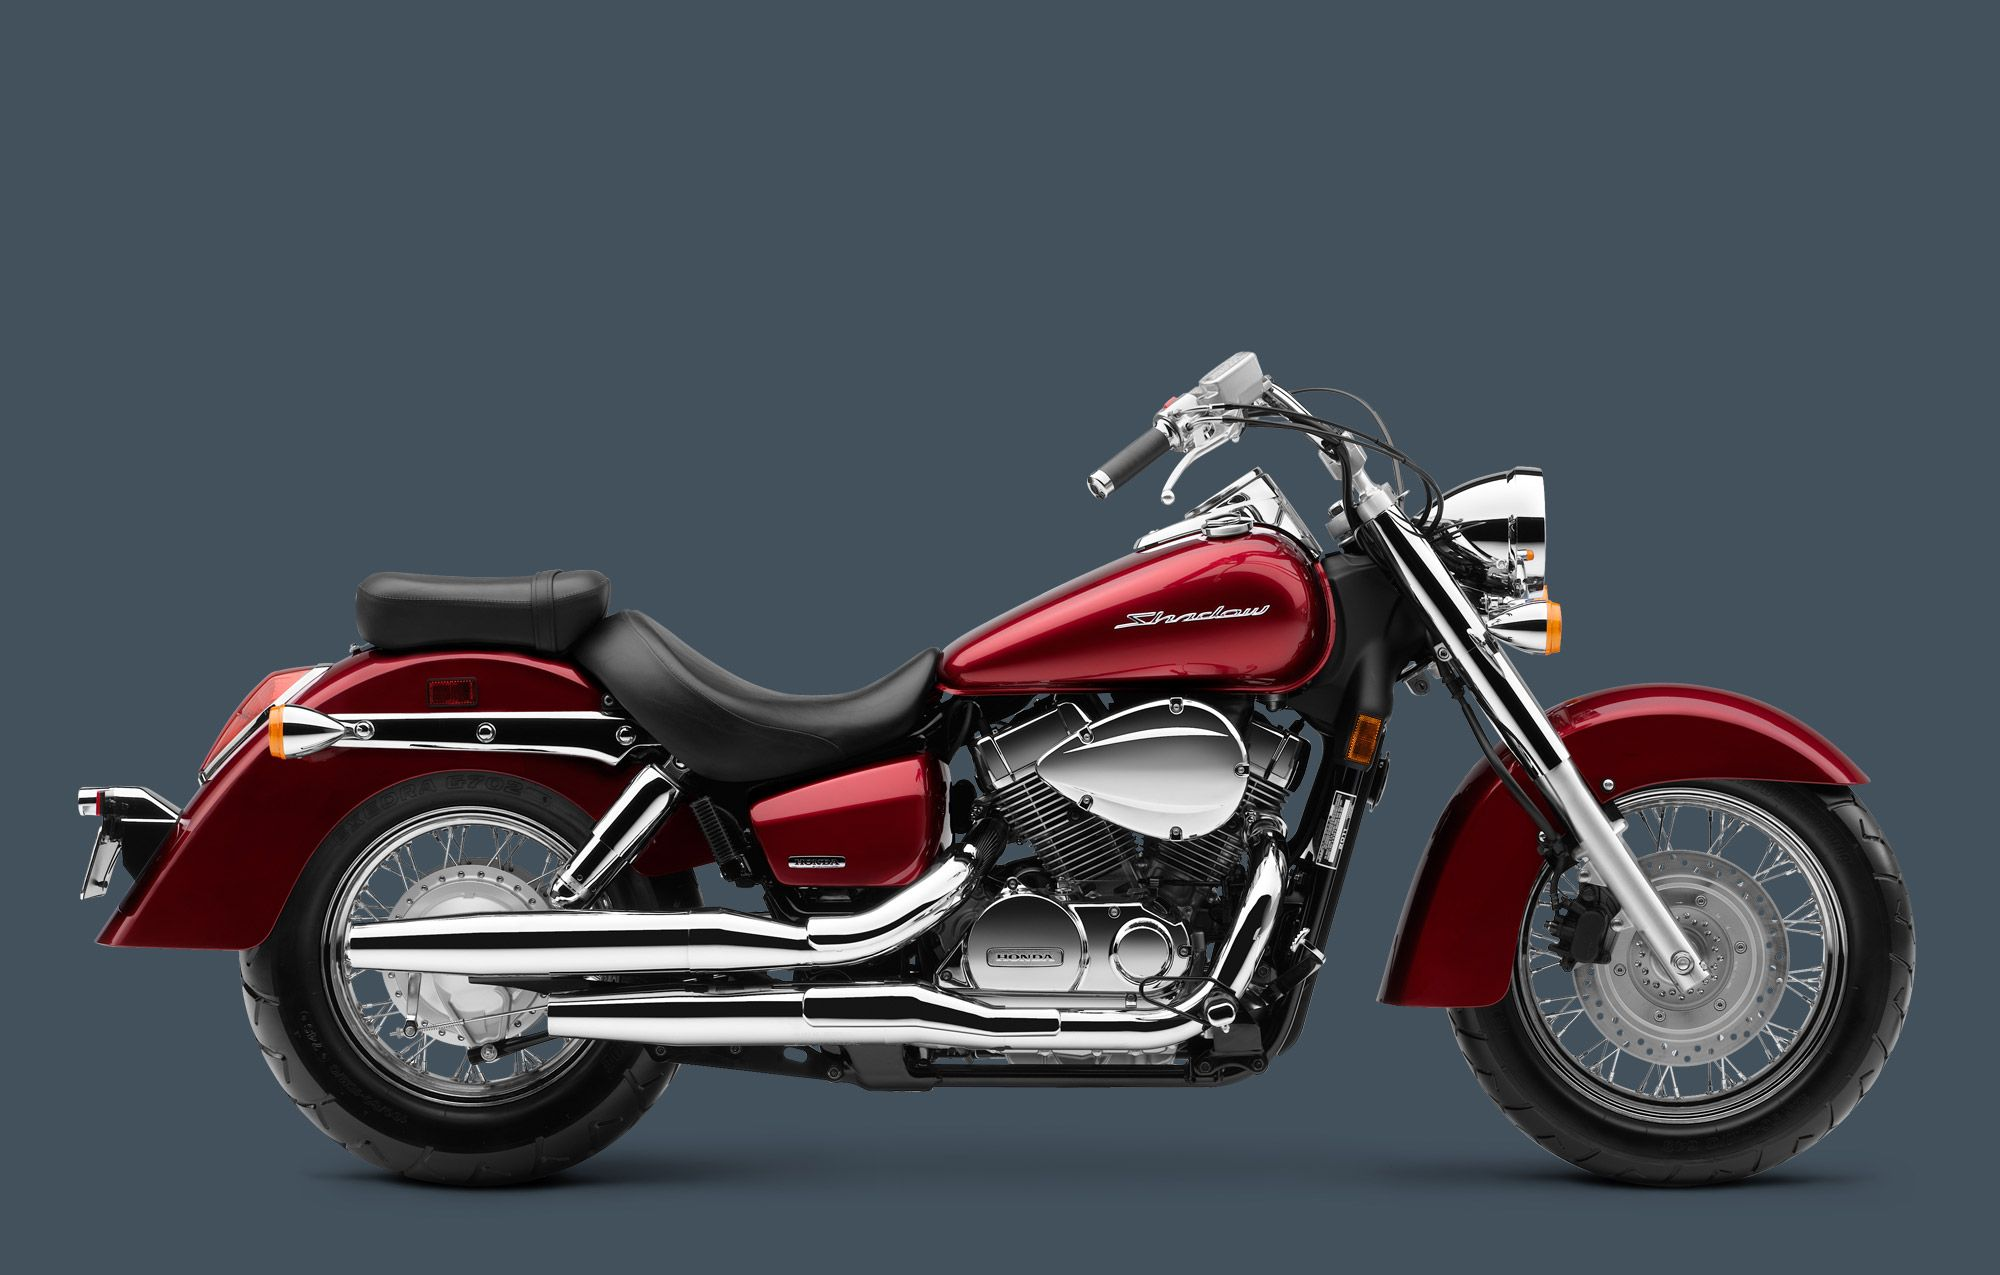 Honda Shadow Aero.  This is the one I want, this color, this size.  Pink or lime green with a hello kitty or tink yep